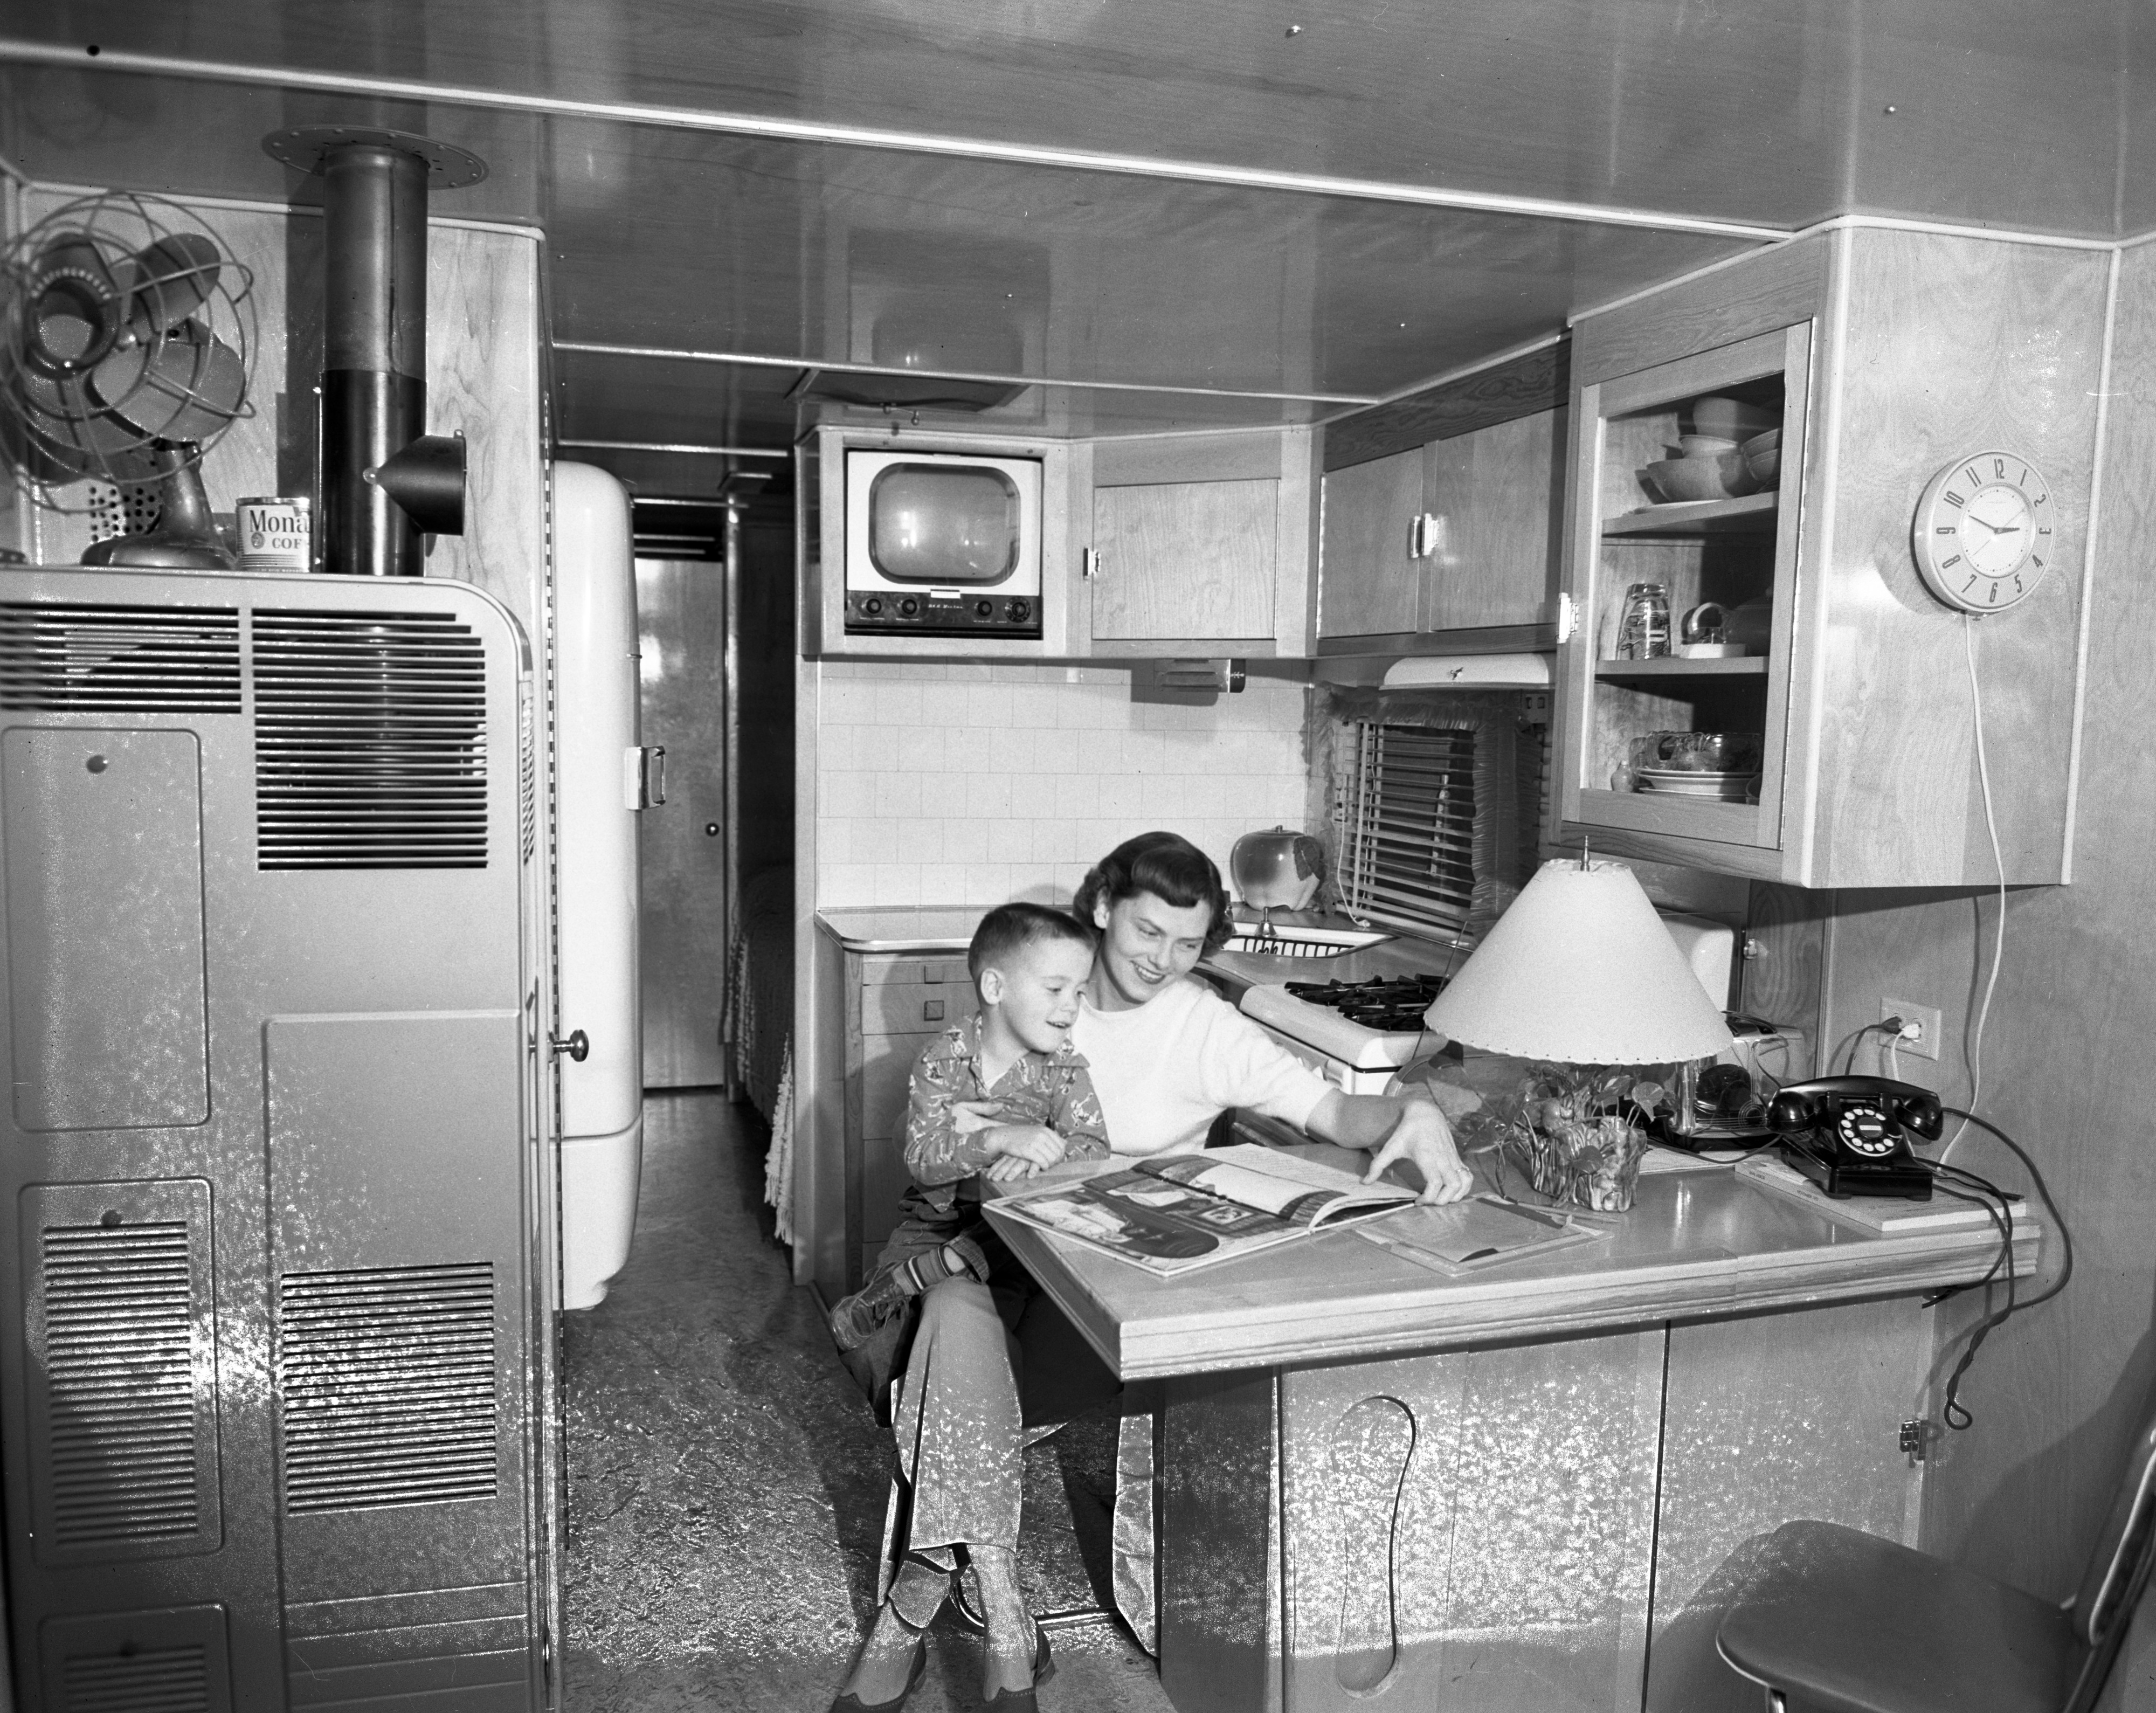 Mrs. Paul T. Pohly and her son Richard, in their trailer home in Sunnyside Trailer Park on Packard, November 1951 image